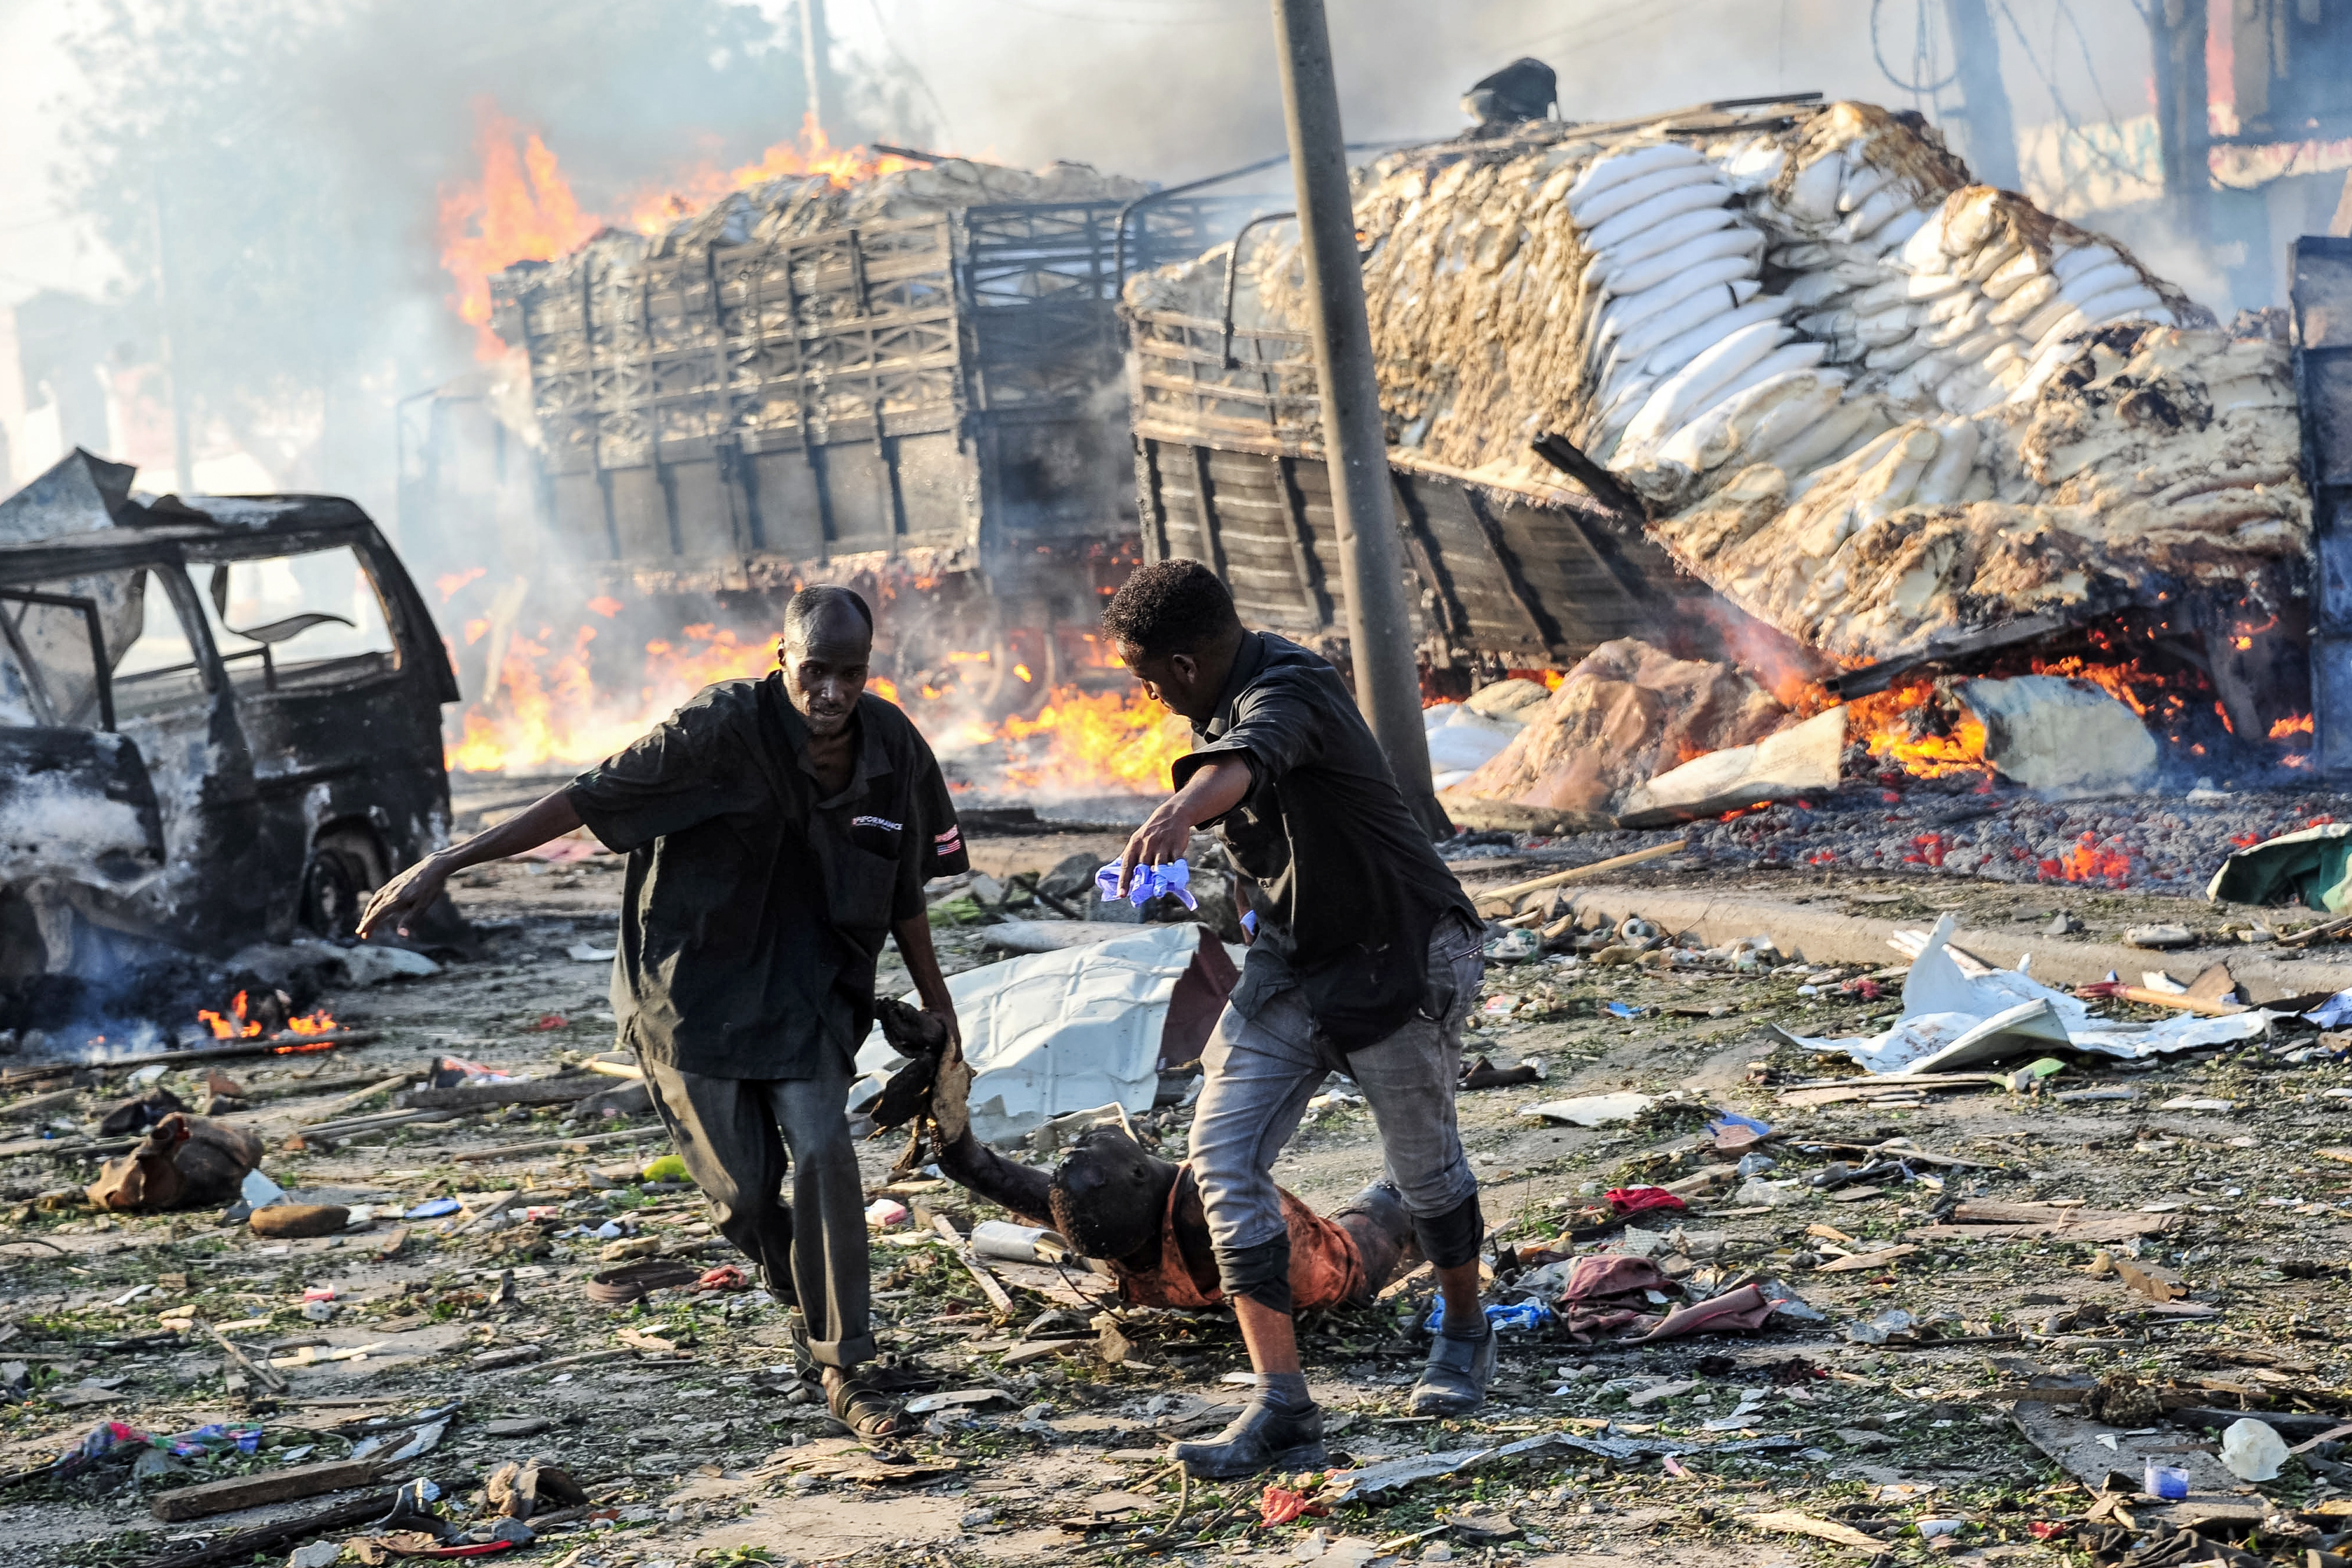 Two men carry the body of a victim following the explosion of a truck bomb in the center of Mogadishu, on Oct. 14, 2017.